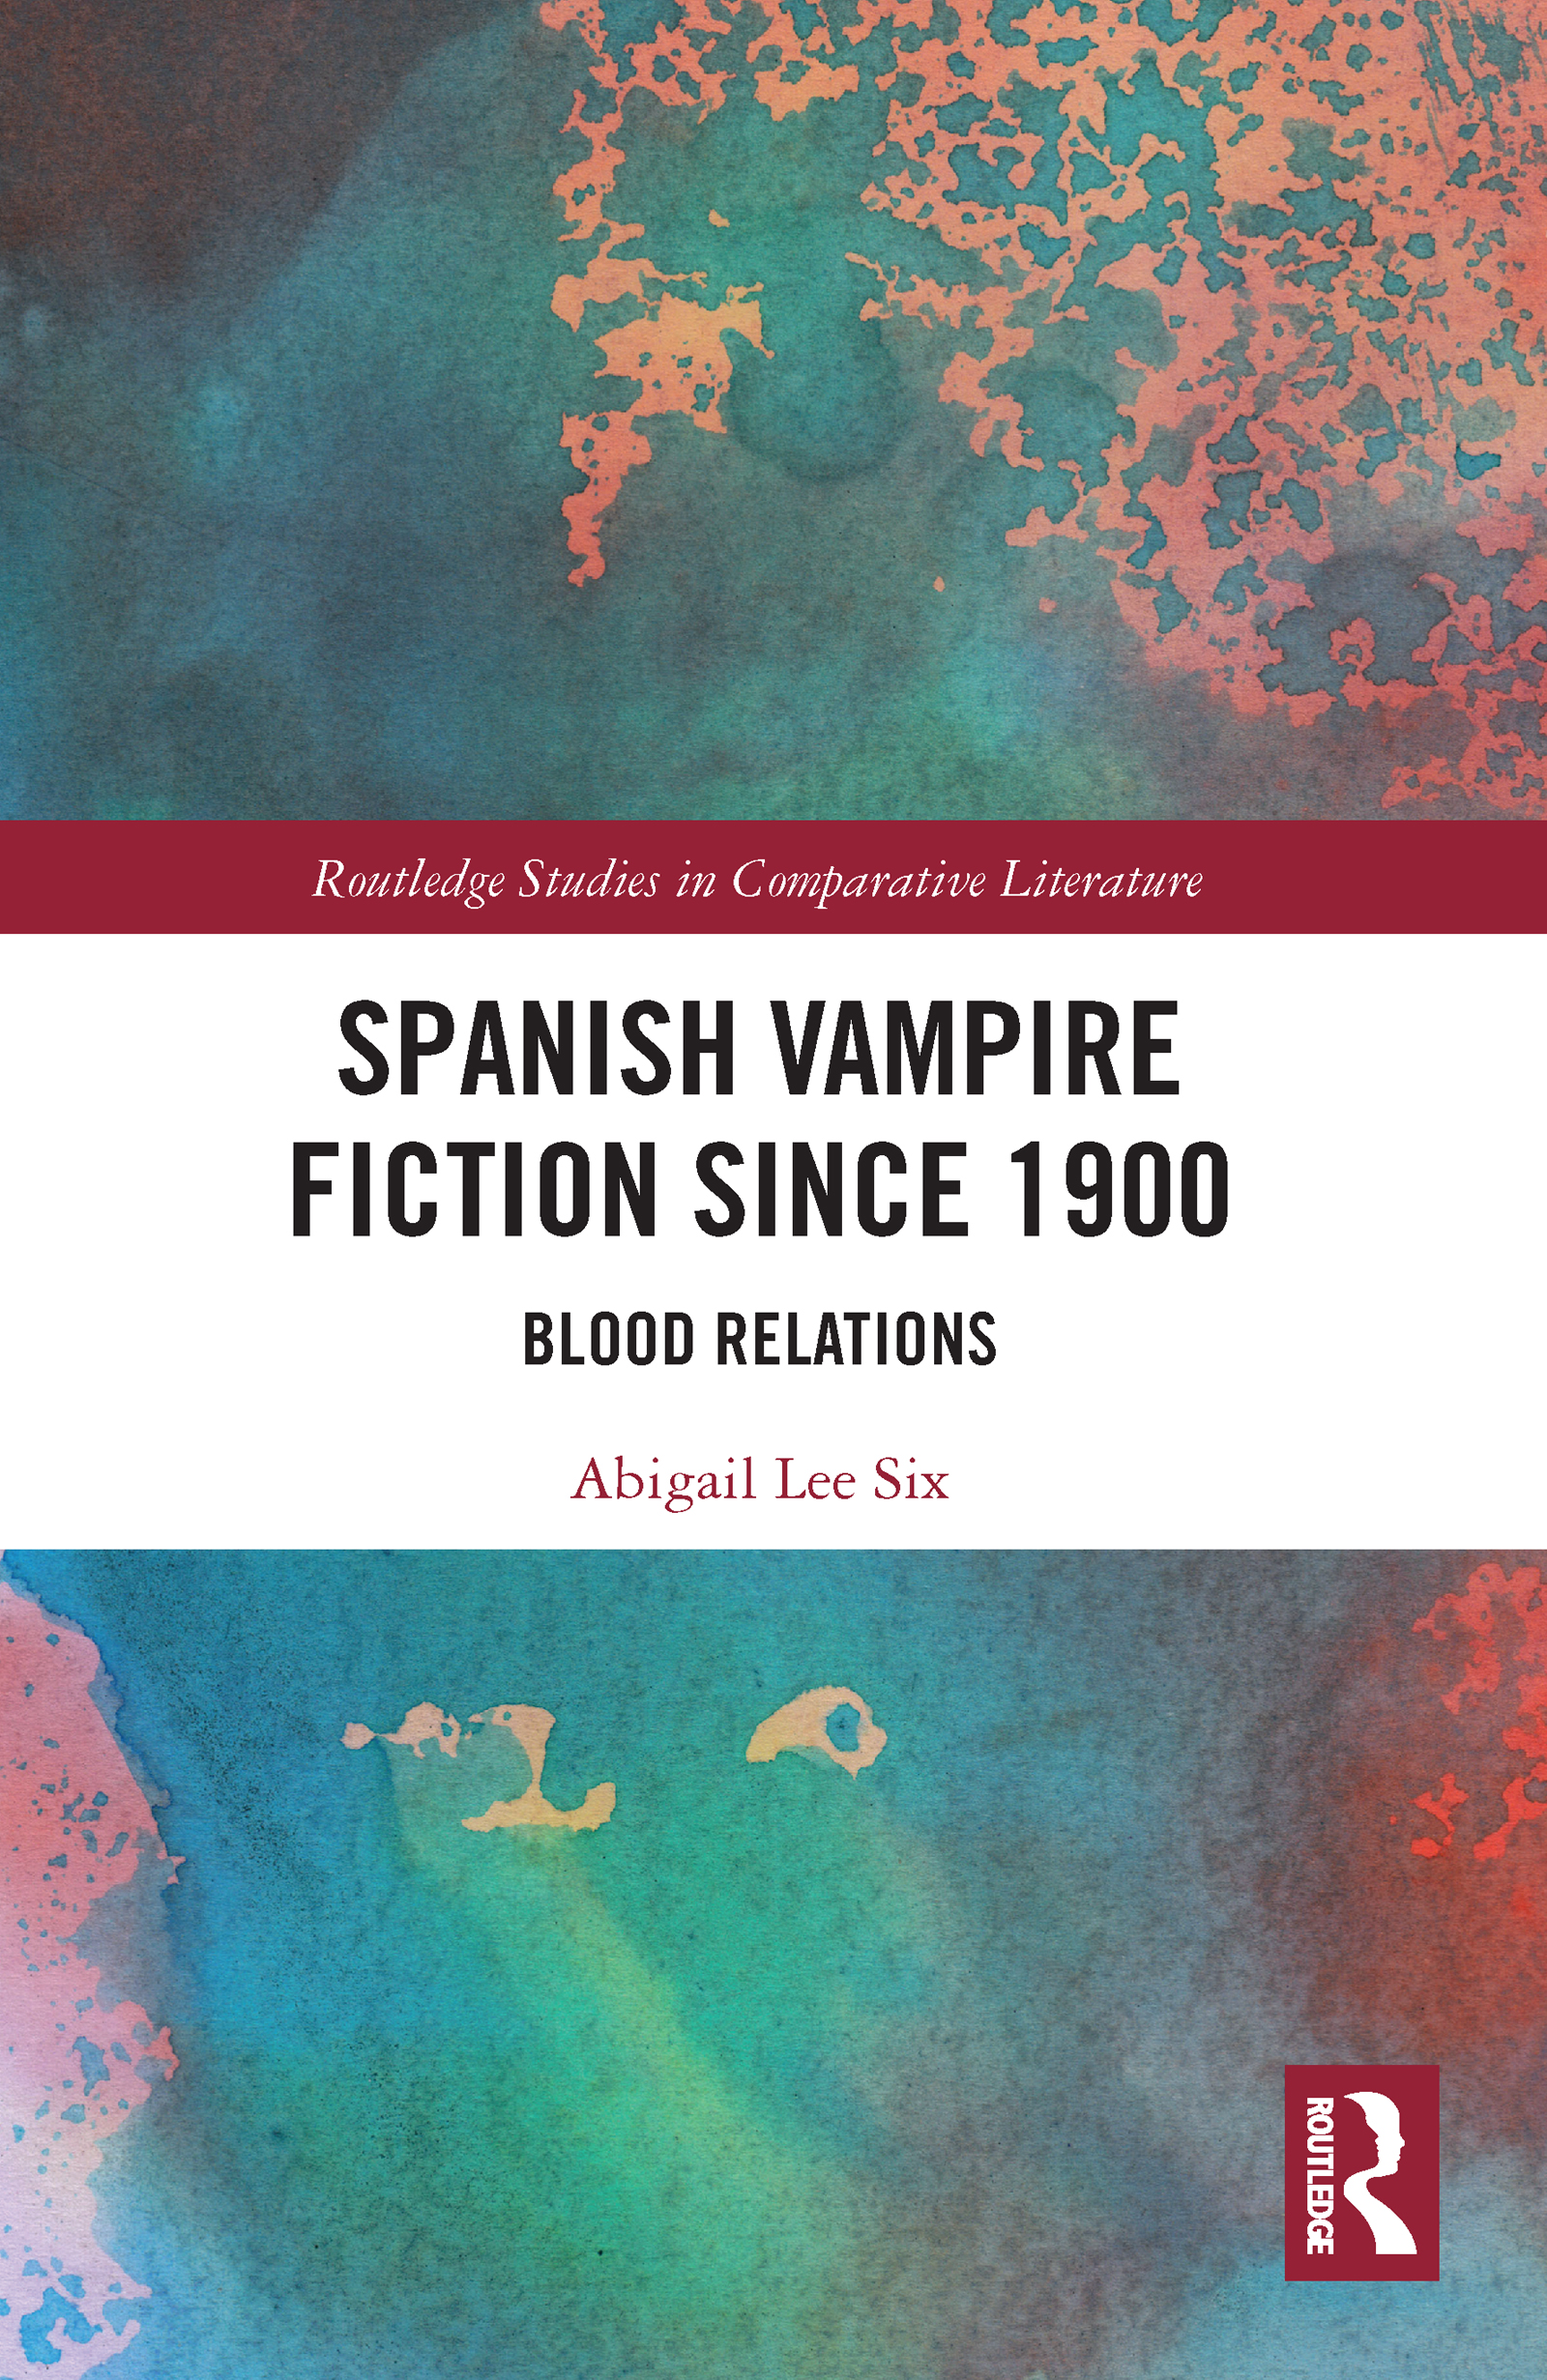 Spanish Vampire Fiction since 1900